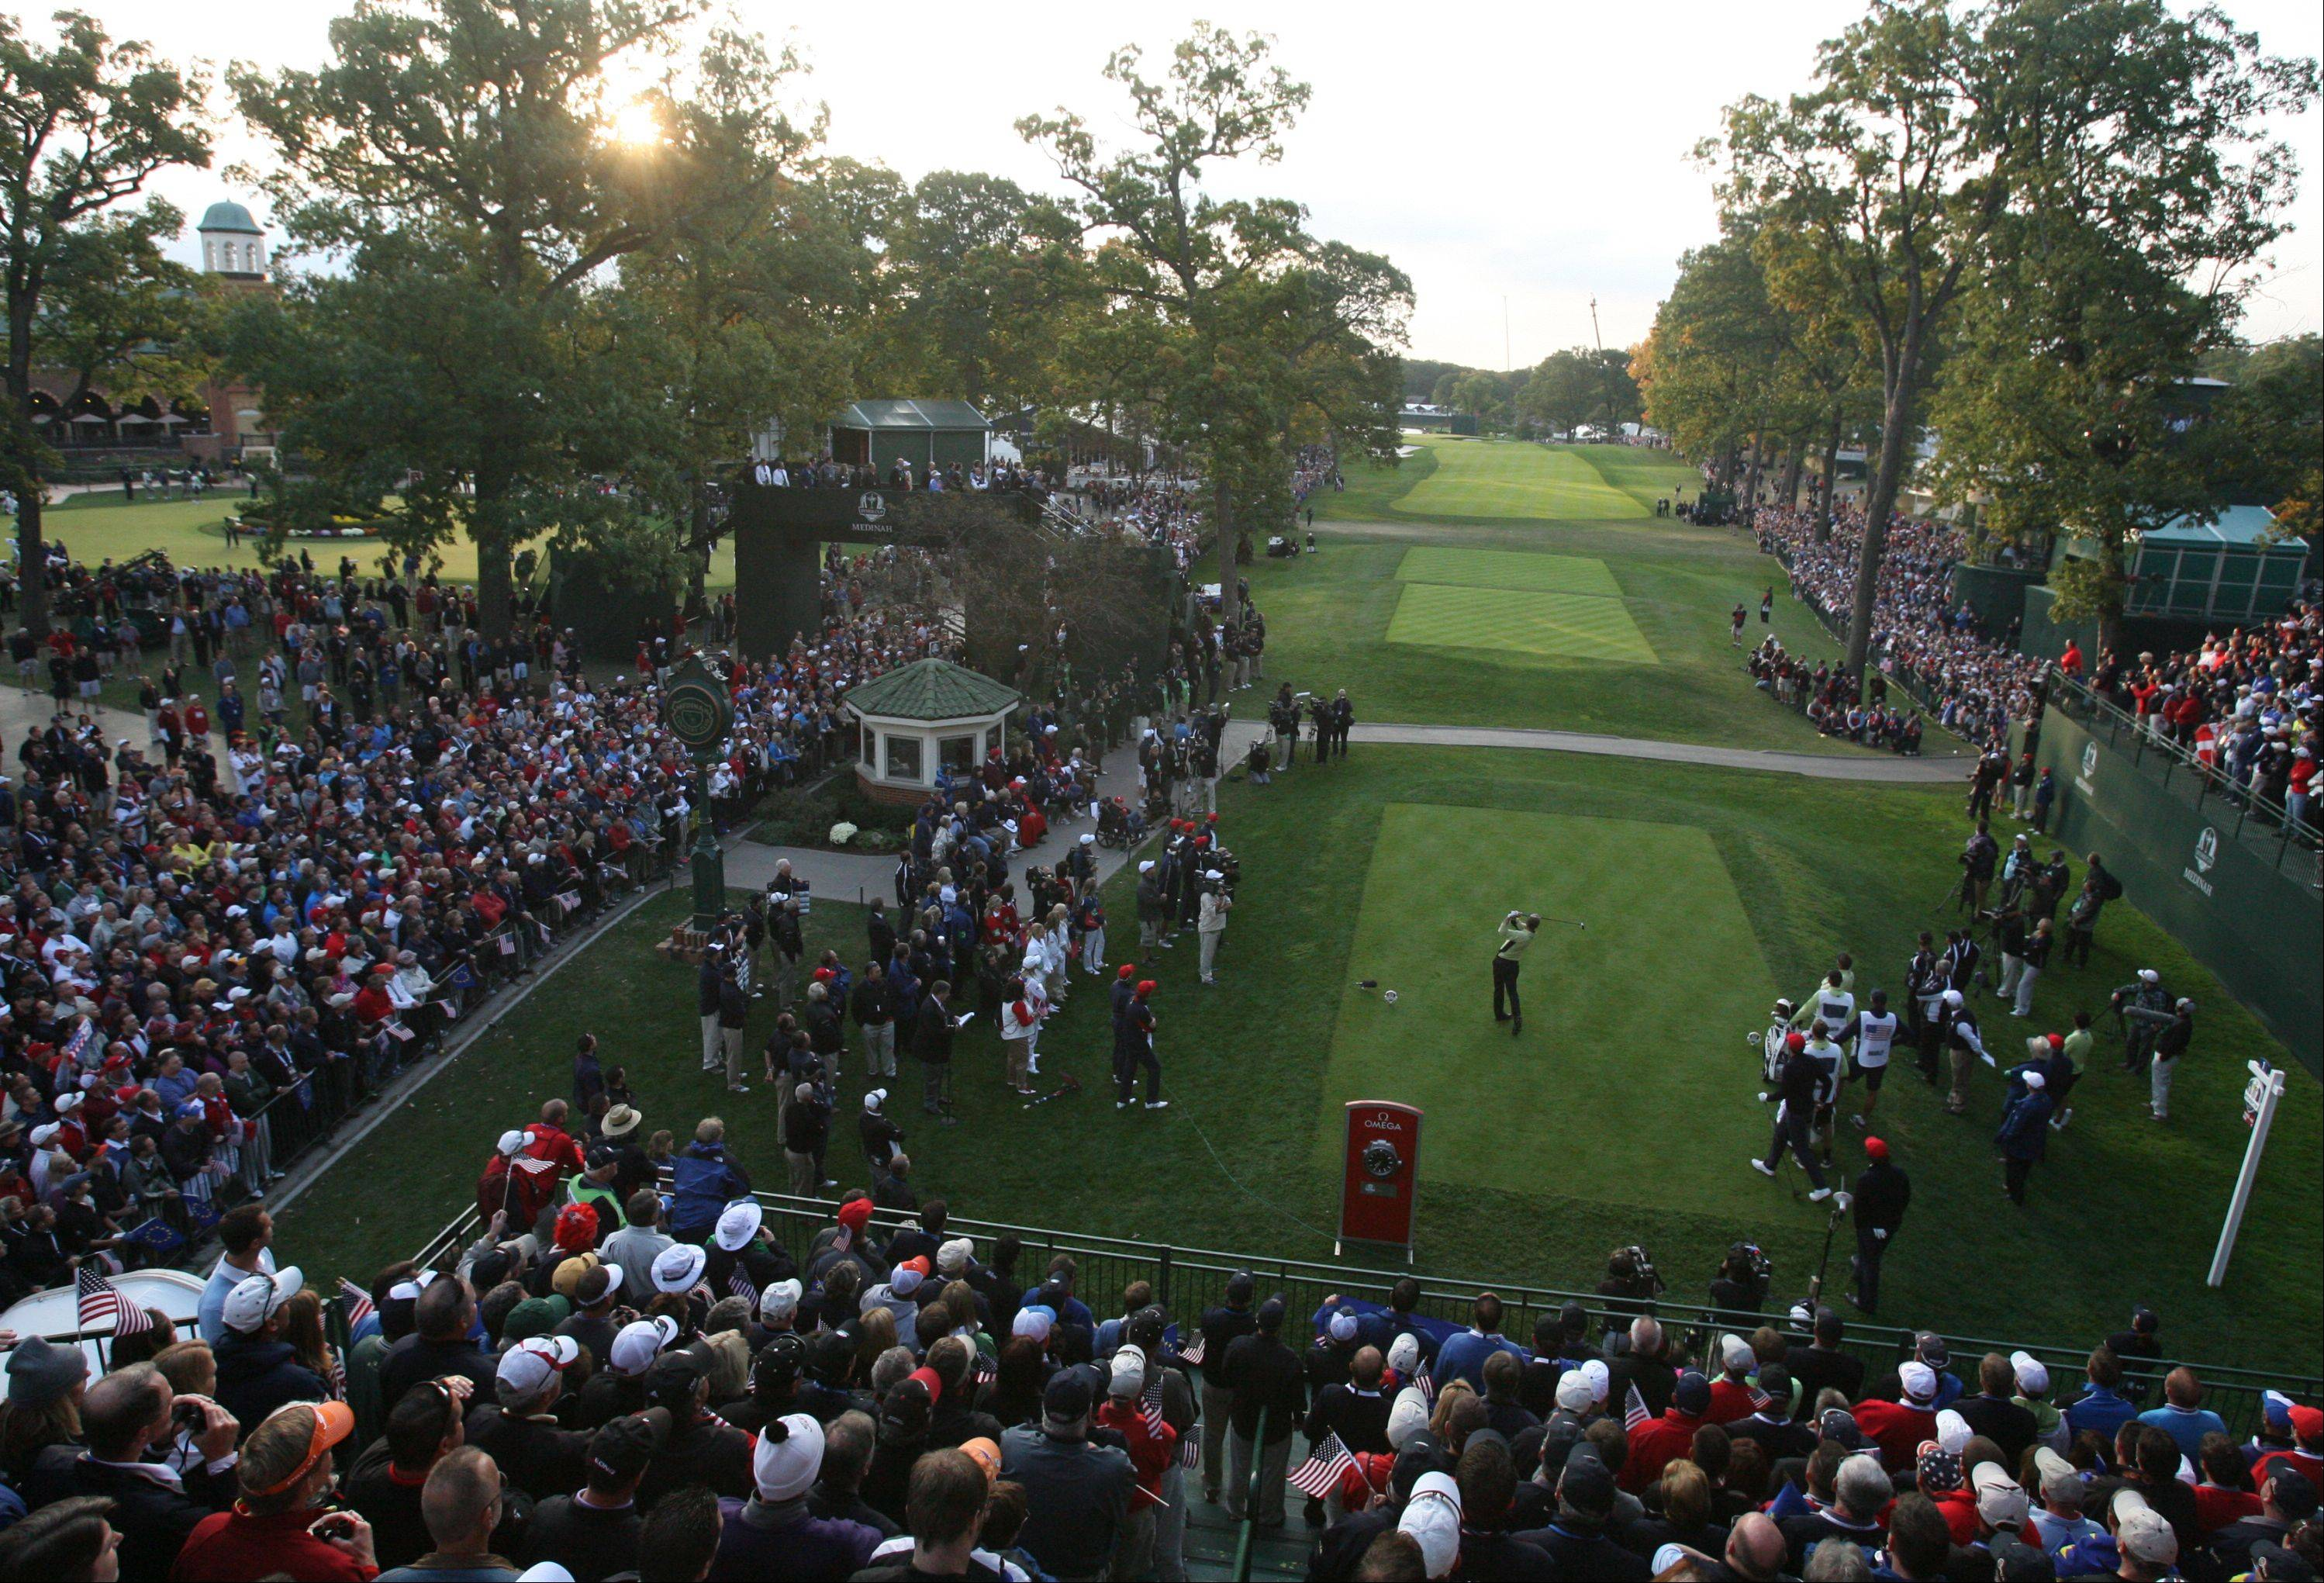 Luke Donald of Team Europe tees off as the sun rises through the trees at Medinah Country Club.